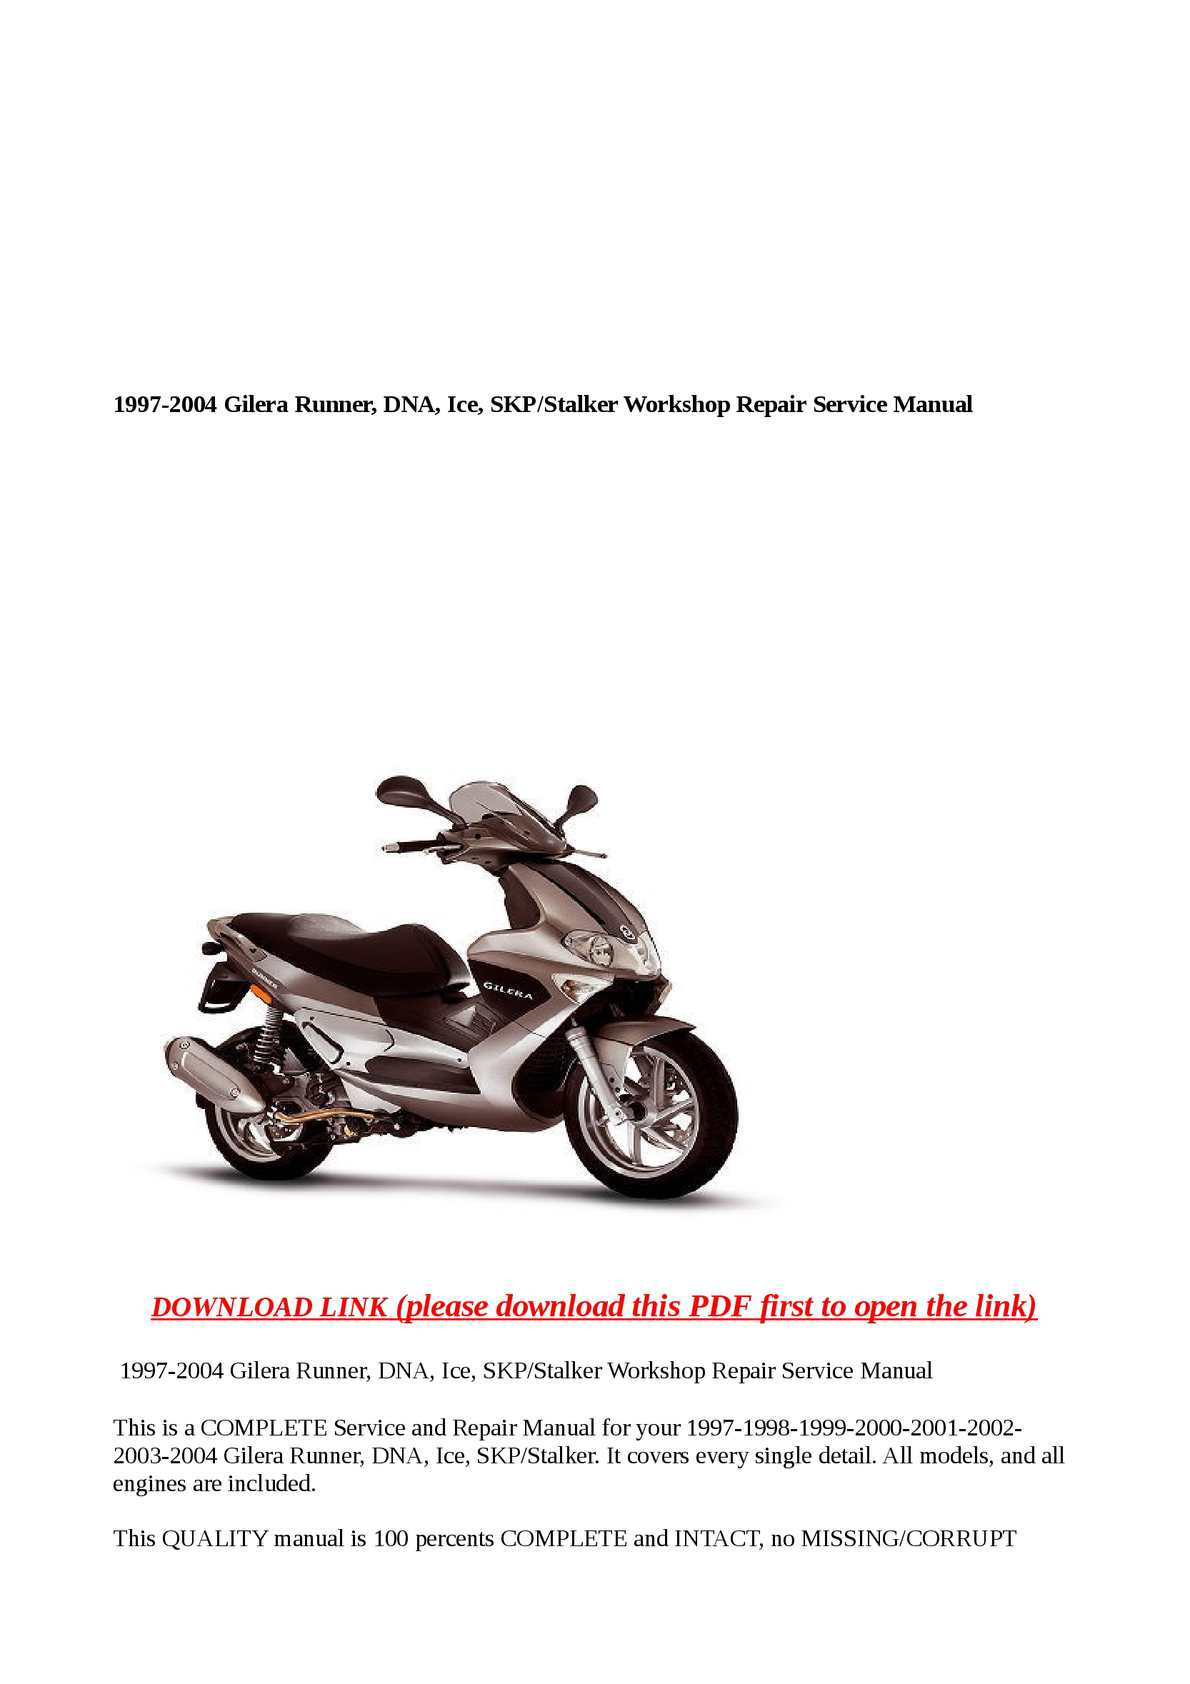 gilera runner instruction manual